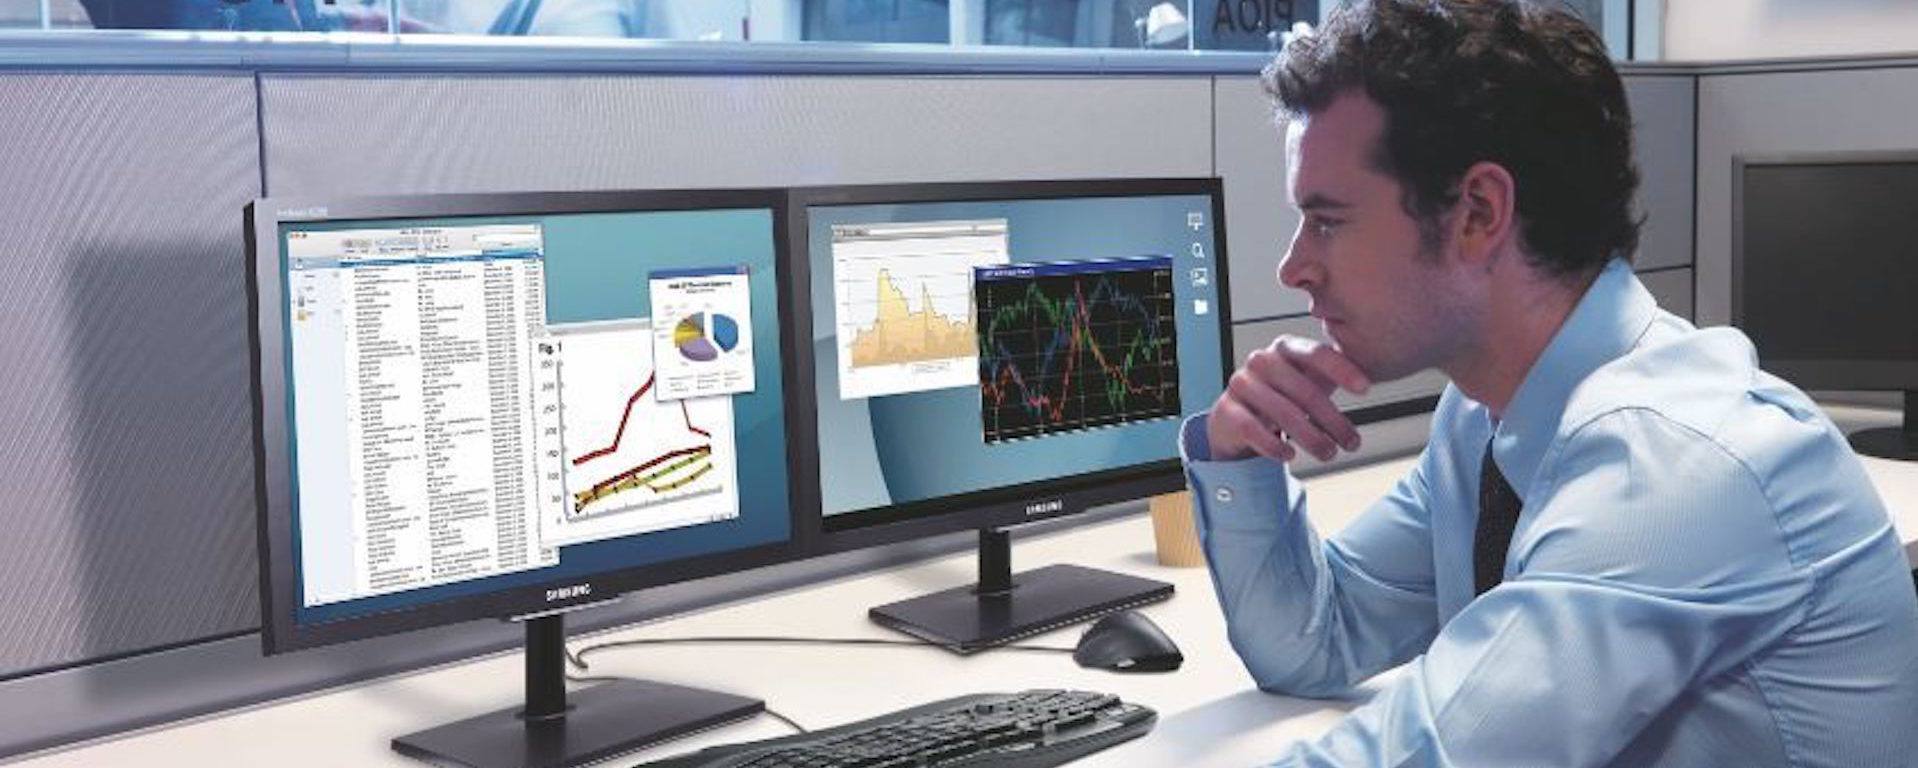 Increased productivity and improved ergonomics are a couple benefits of multiple monitors that will ultimately boost your company's bottom line.